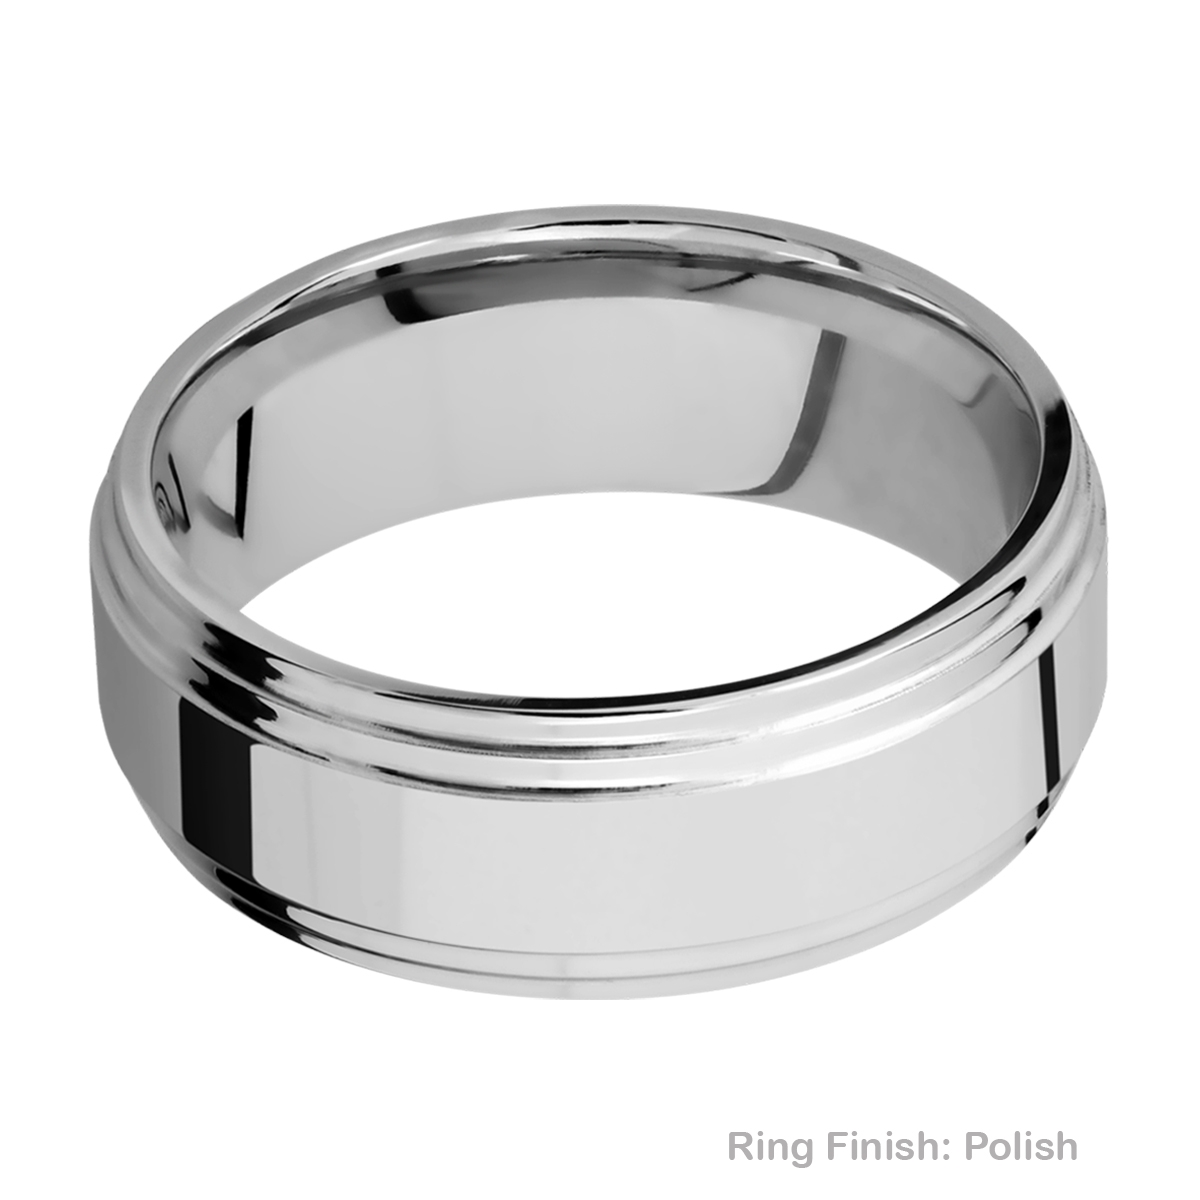 Lashbrook CC8F2S Cobalt Chrome Wedding Ring or Band Alternative View 4